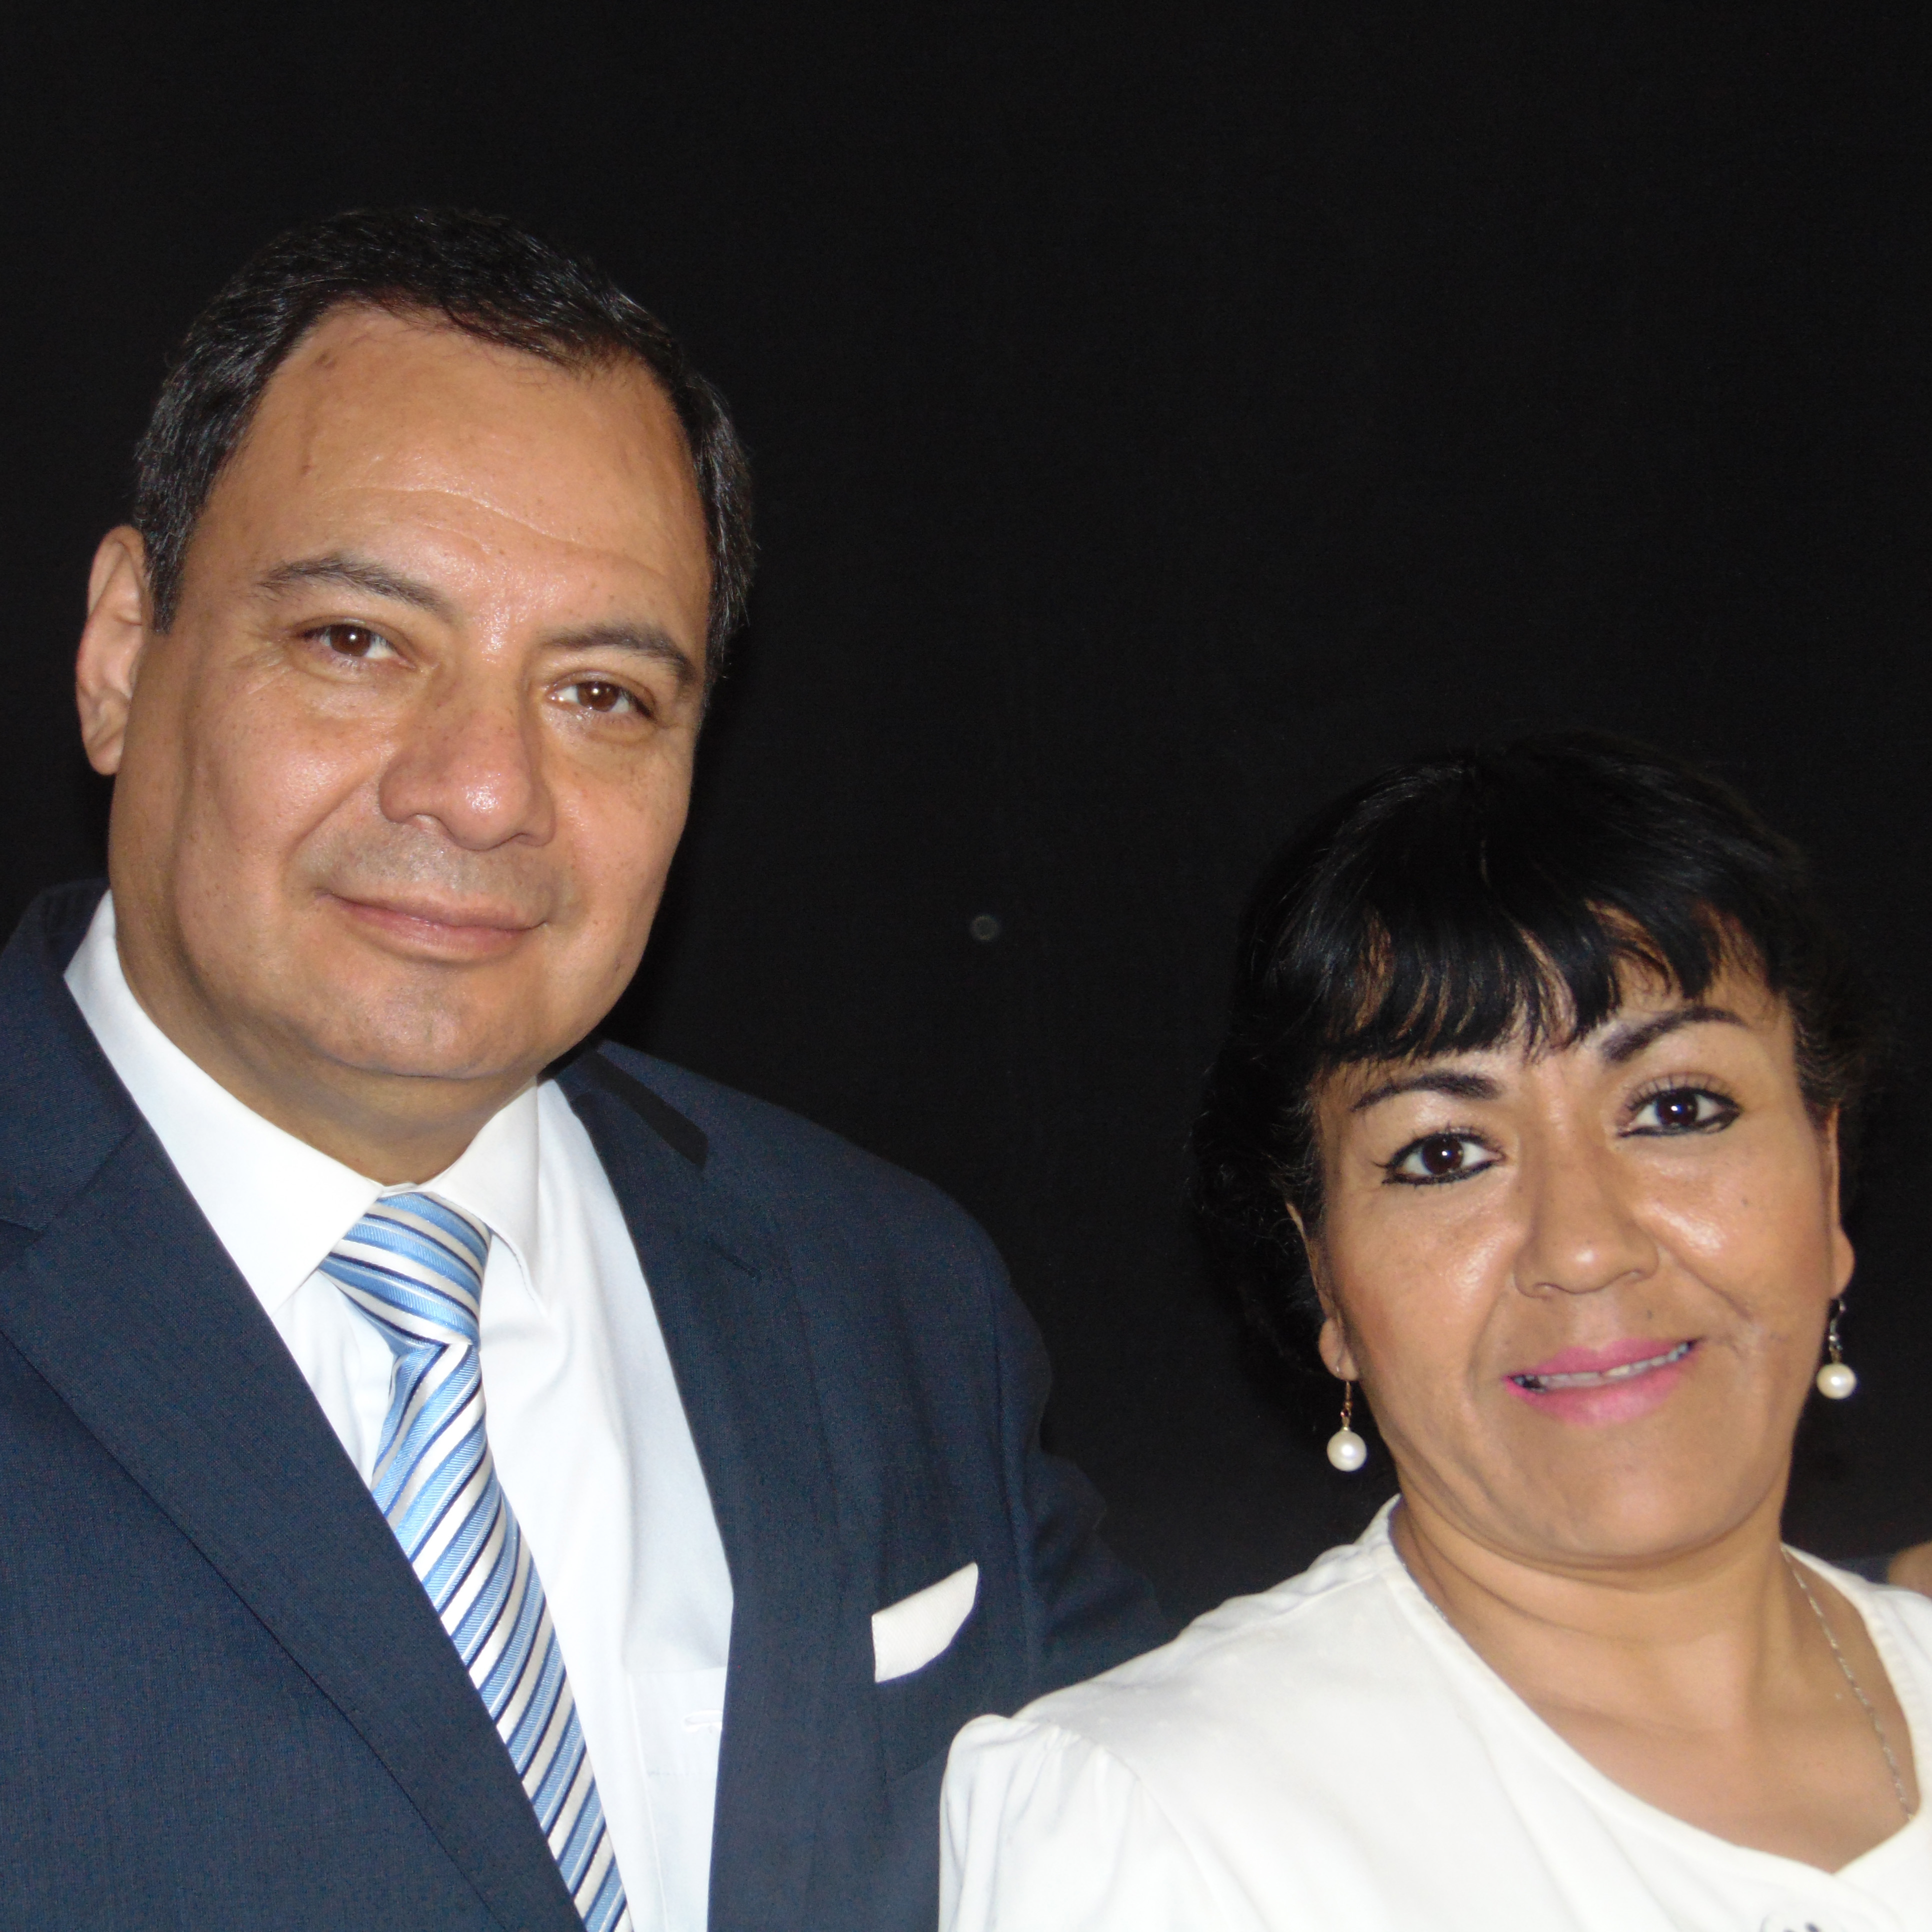 Miguel A. and Irma P. Reyes